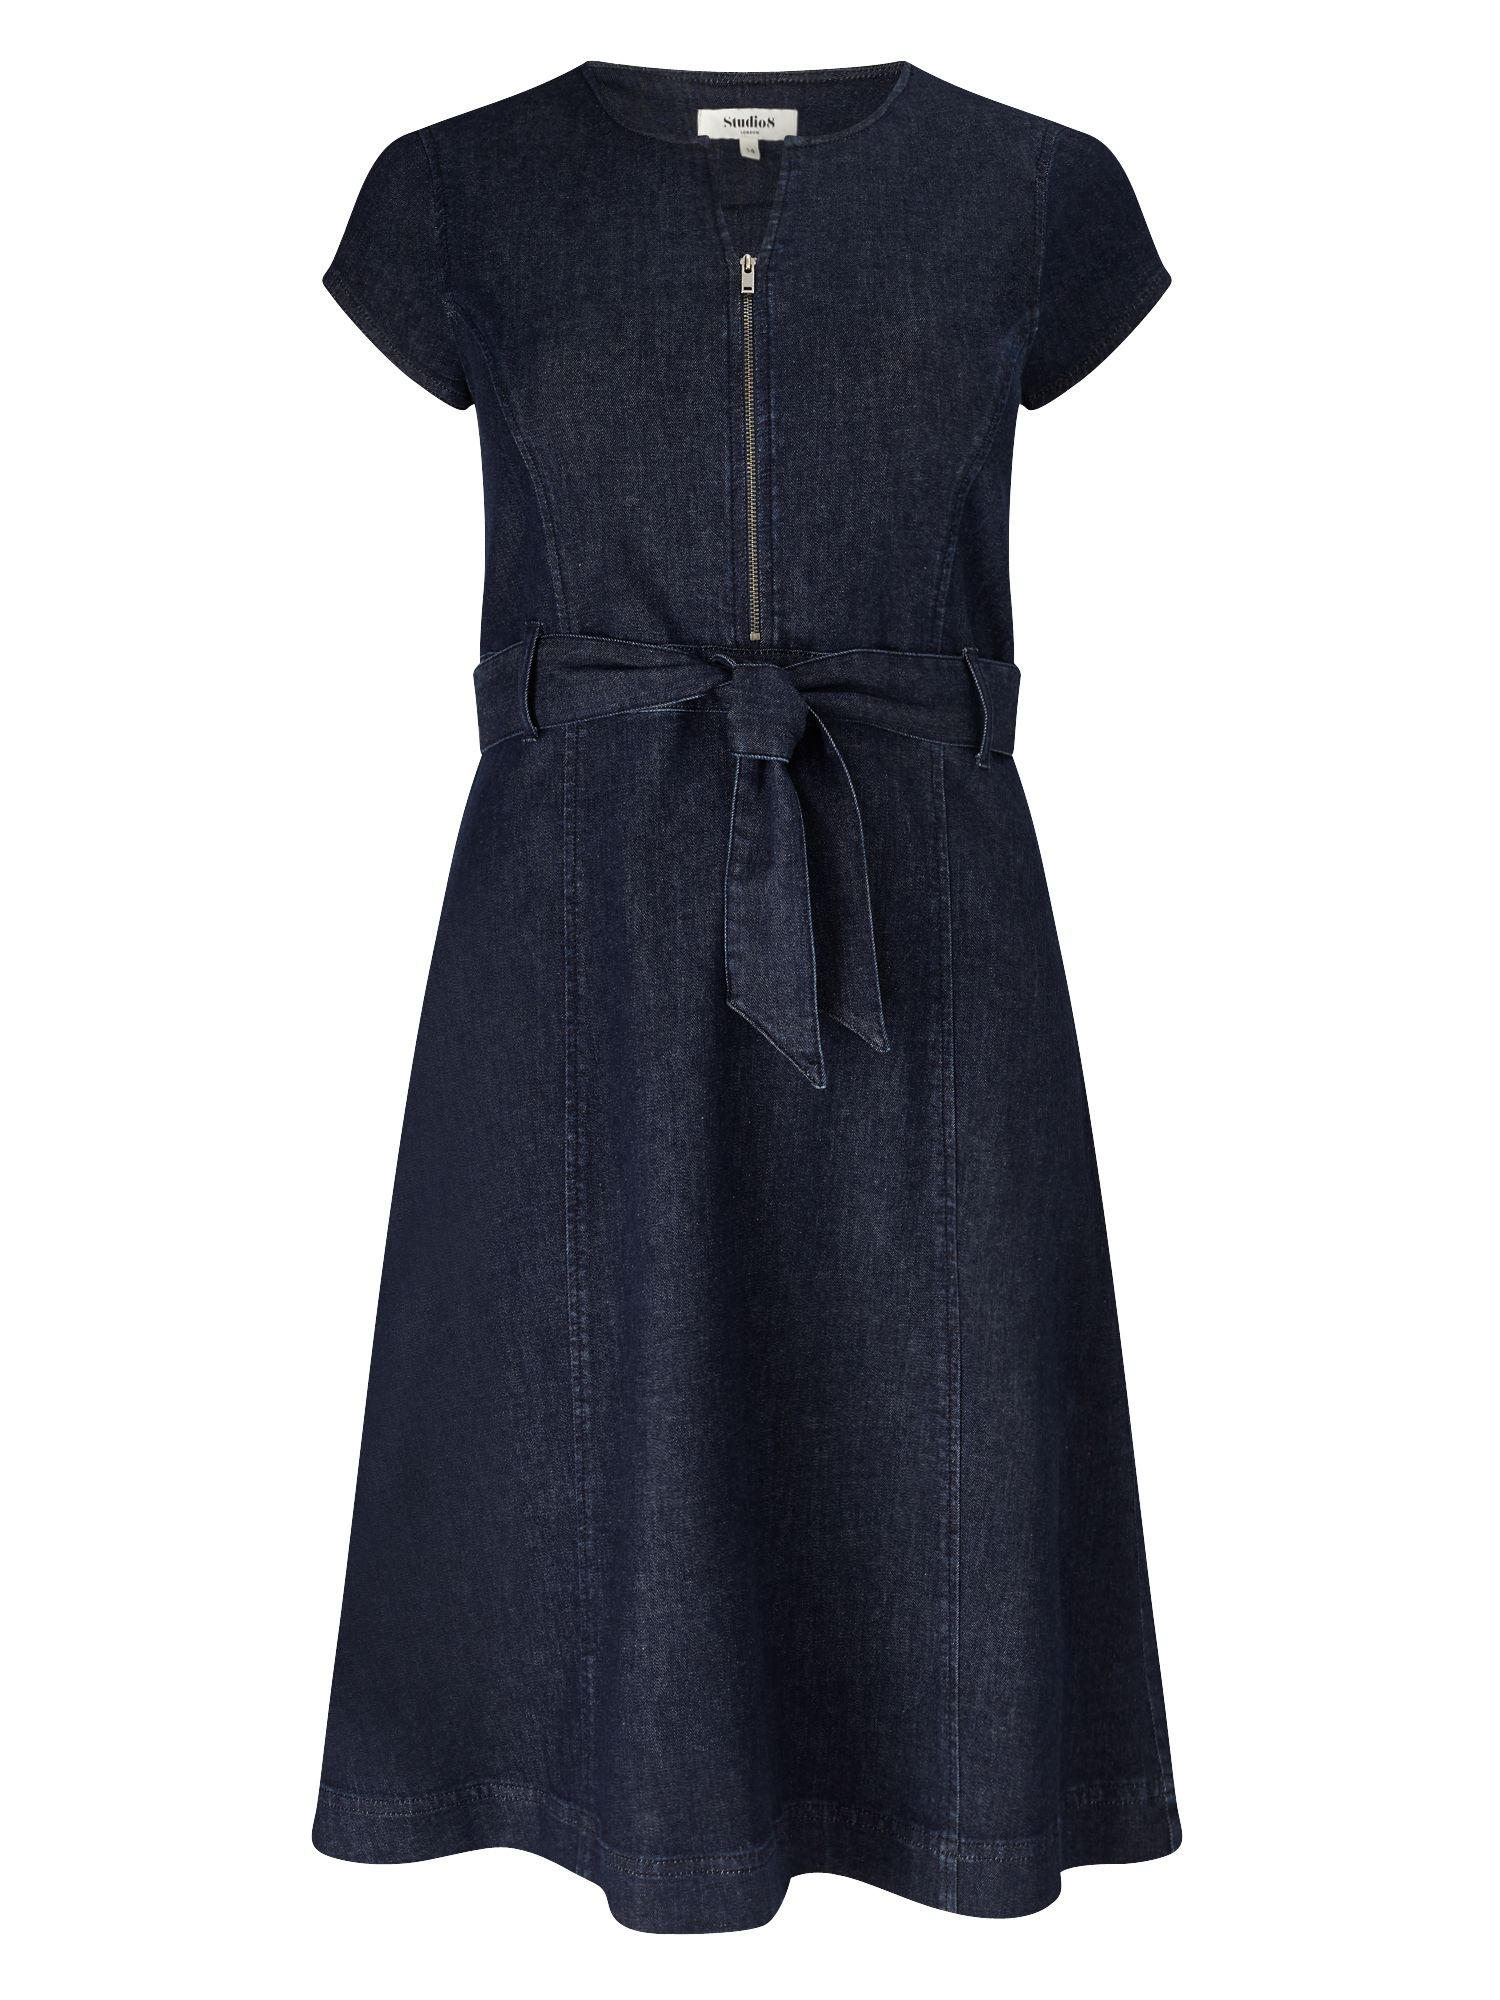 Studio 8 Rea Dress, Indigo